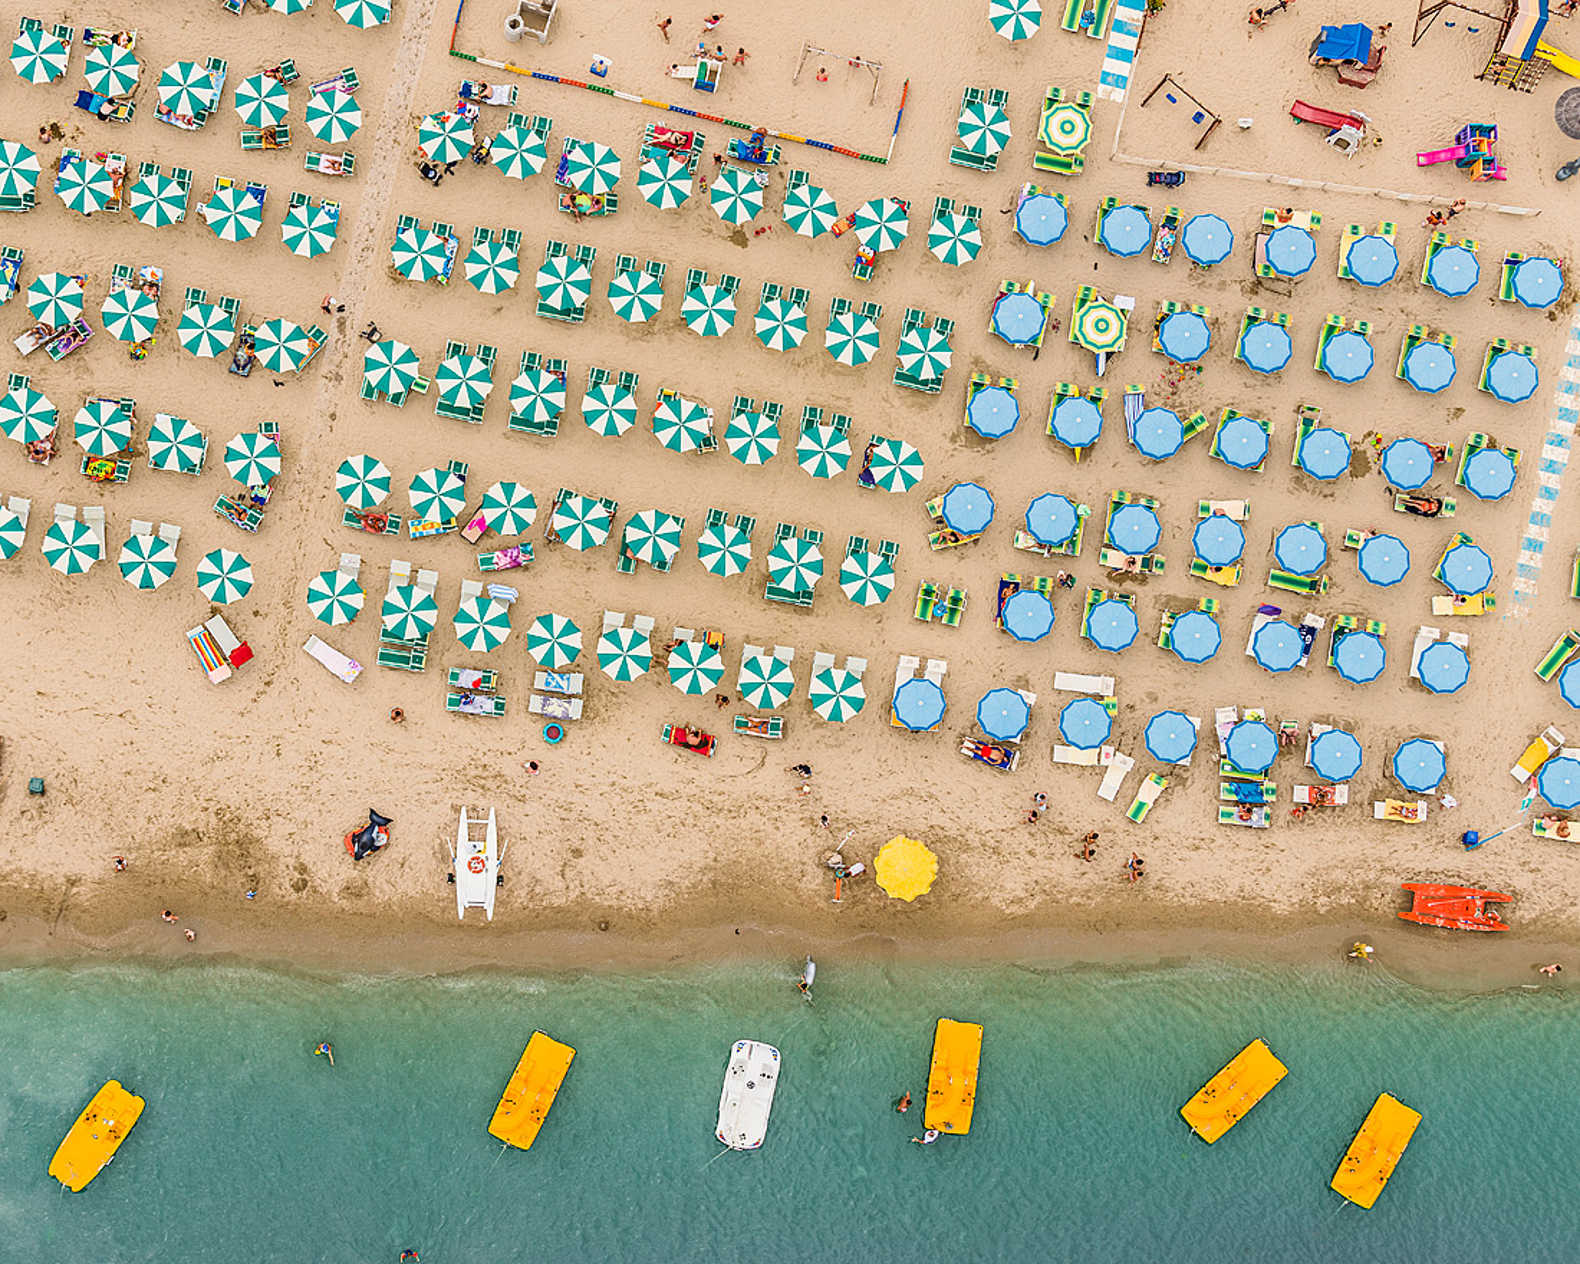 Bernhard Langs Aerial Photographs Give A Whole New Perspective On The Day At Beach